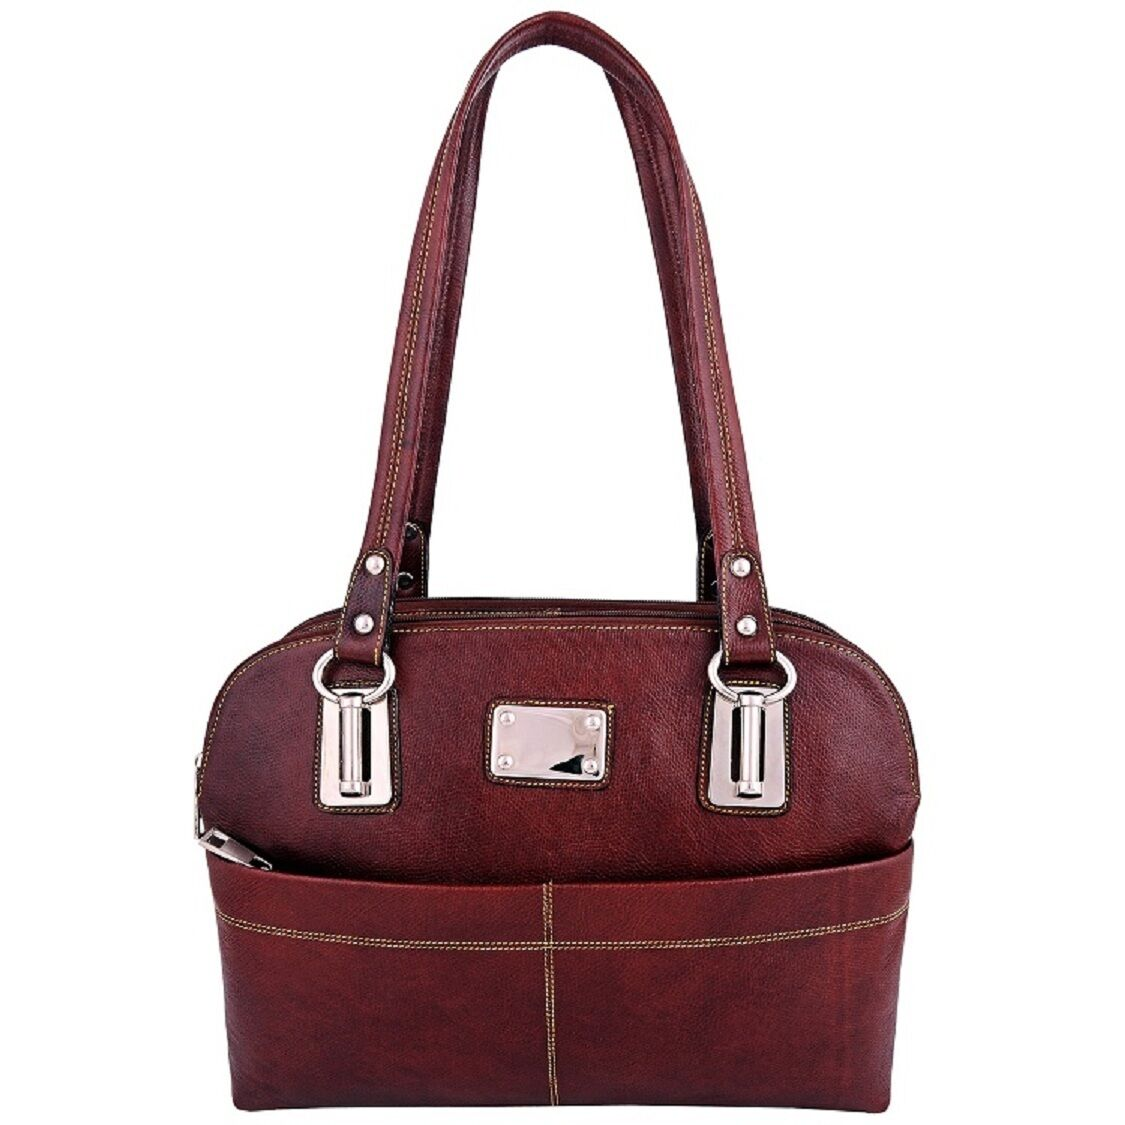 ZINT Genuine Leather Womens Handbag Brown Ladies Purse Shoul